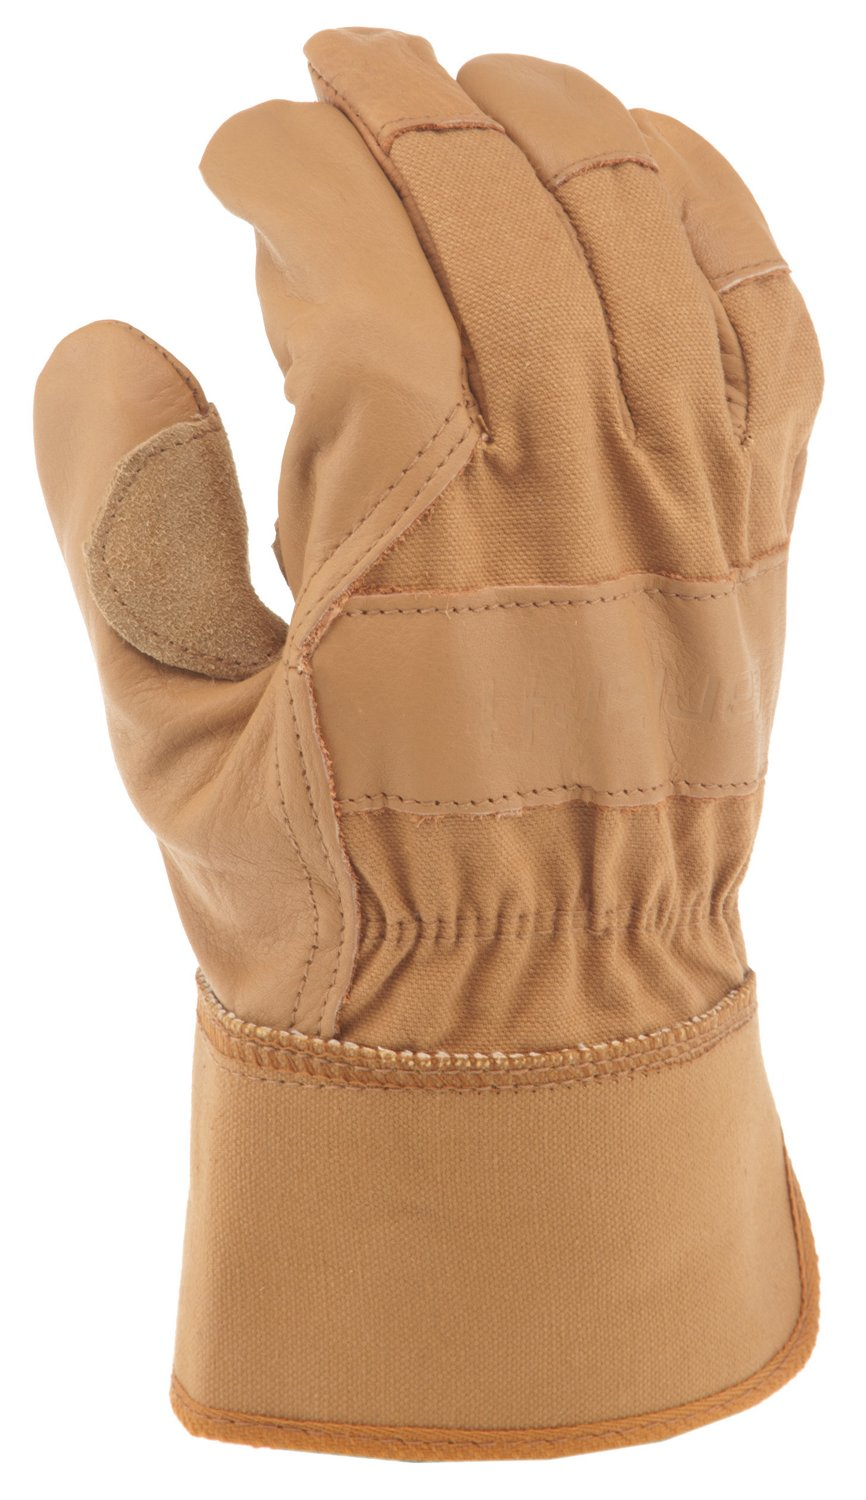 f800249000f Display product reviews for Carhartt Men's Grain Leather Work Gloves